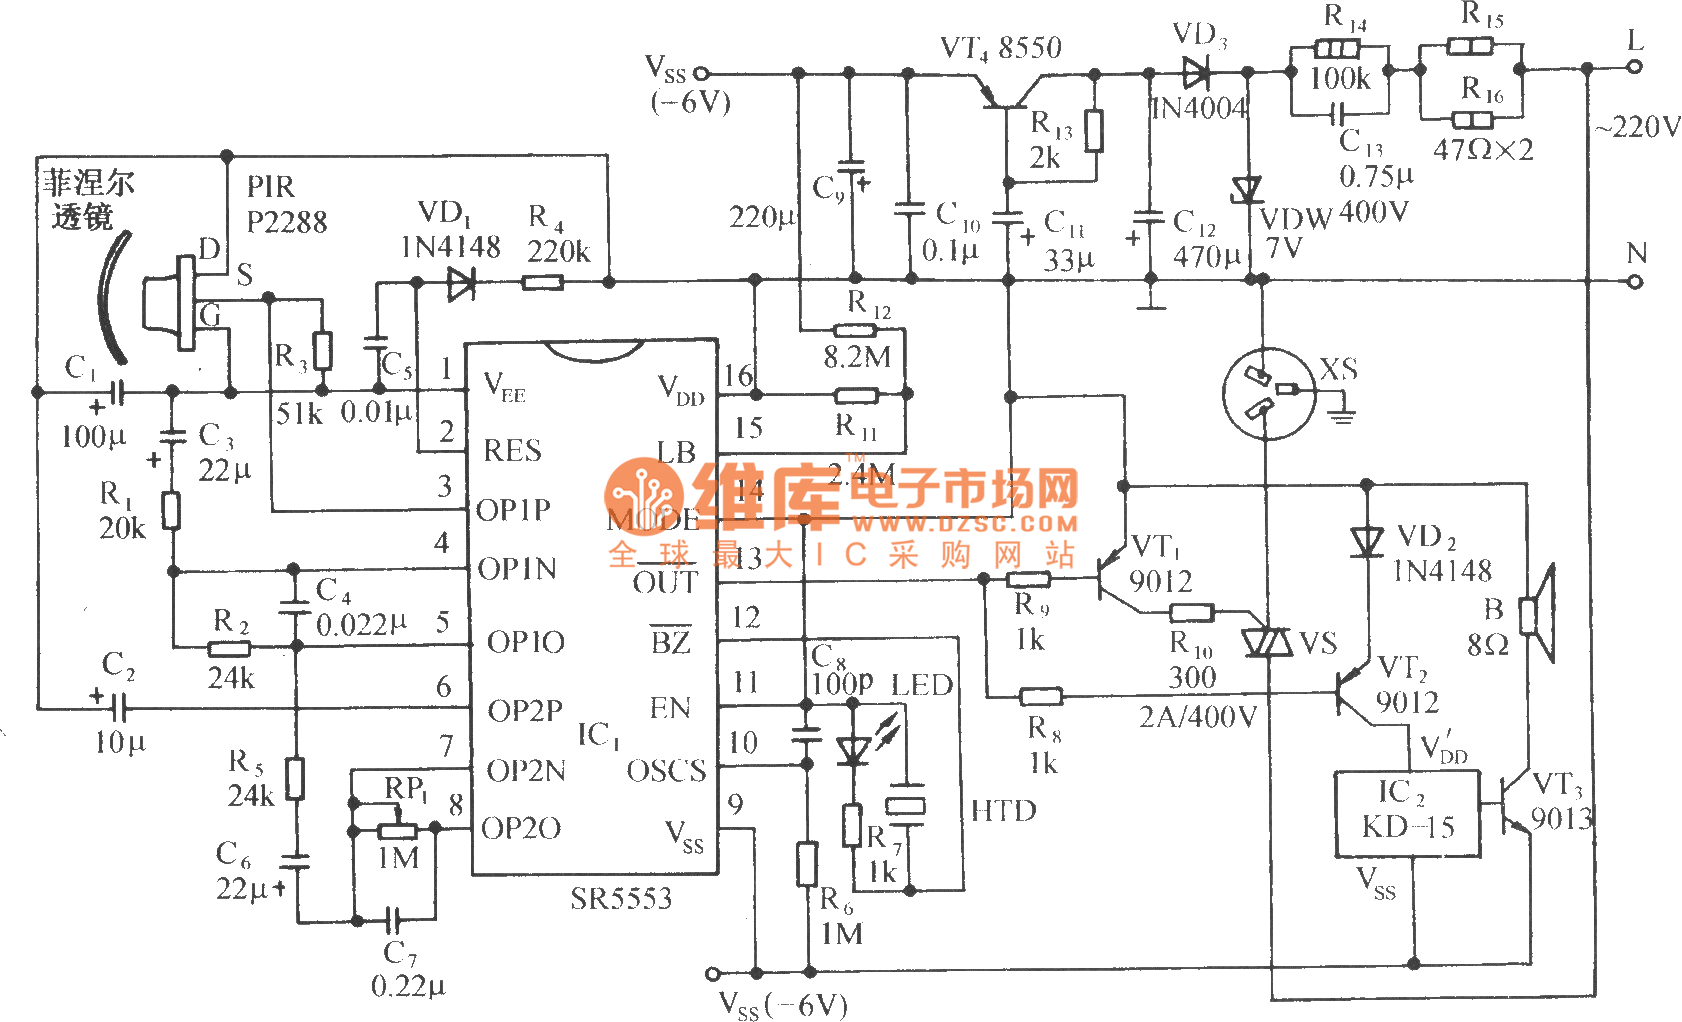 Seekiccom Circuitdiagram Controlcircuit Thepumpcontrolcircuit Index 3 Time Control Circuit Diagram Seekic Infrared Sensing Automatic Startup With